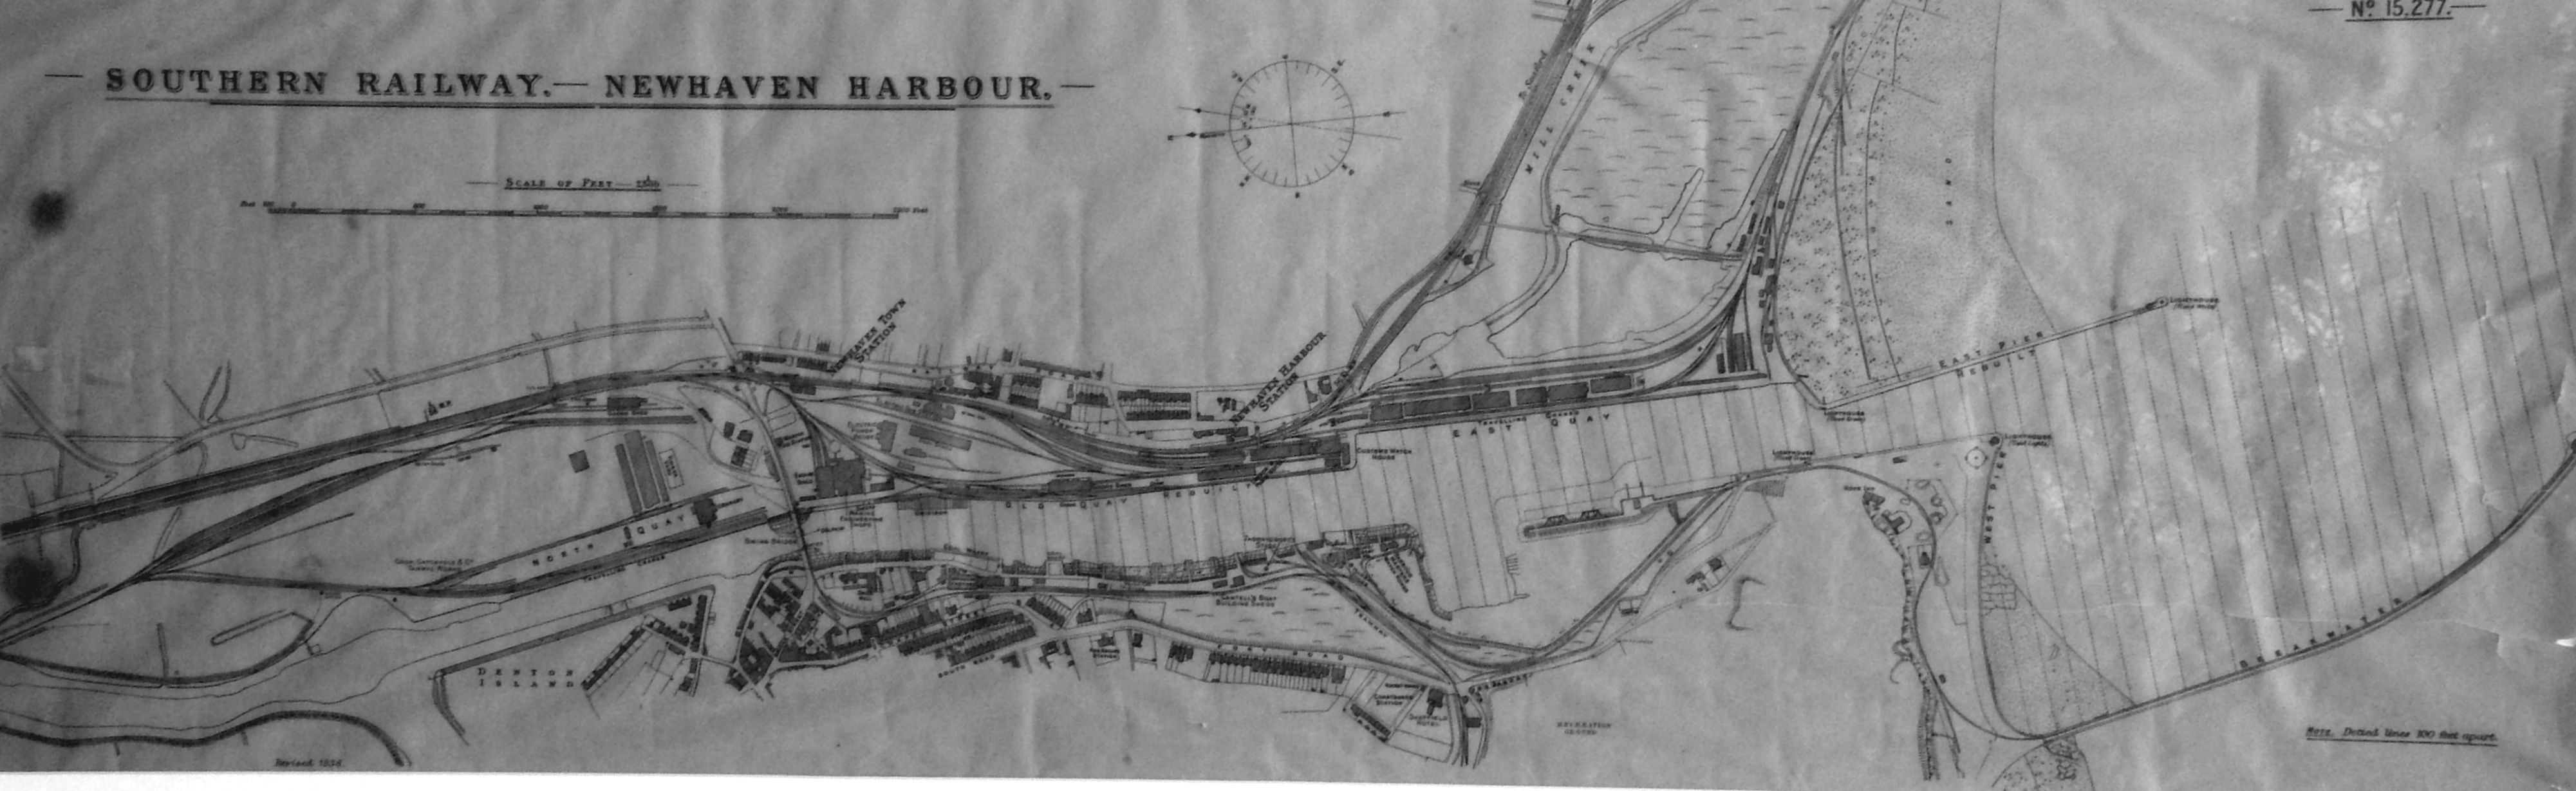 Newhaven Station map 1950